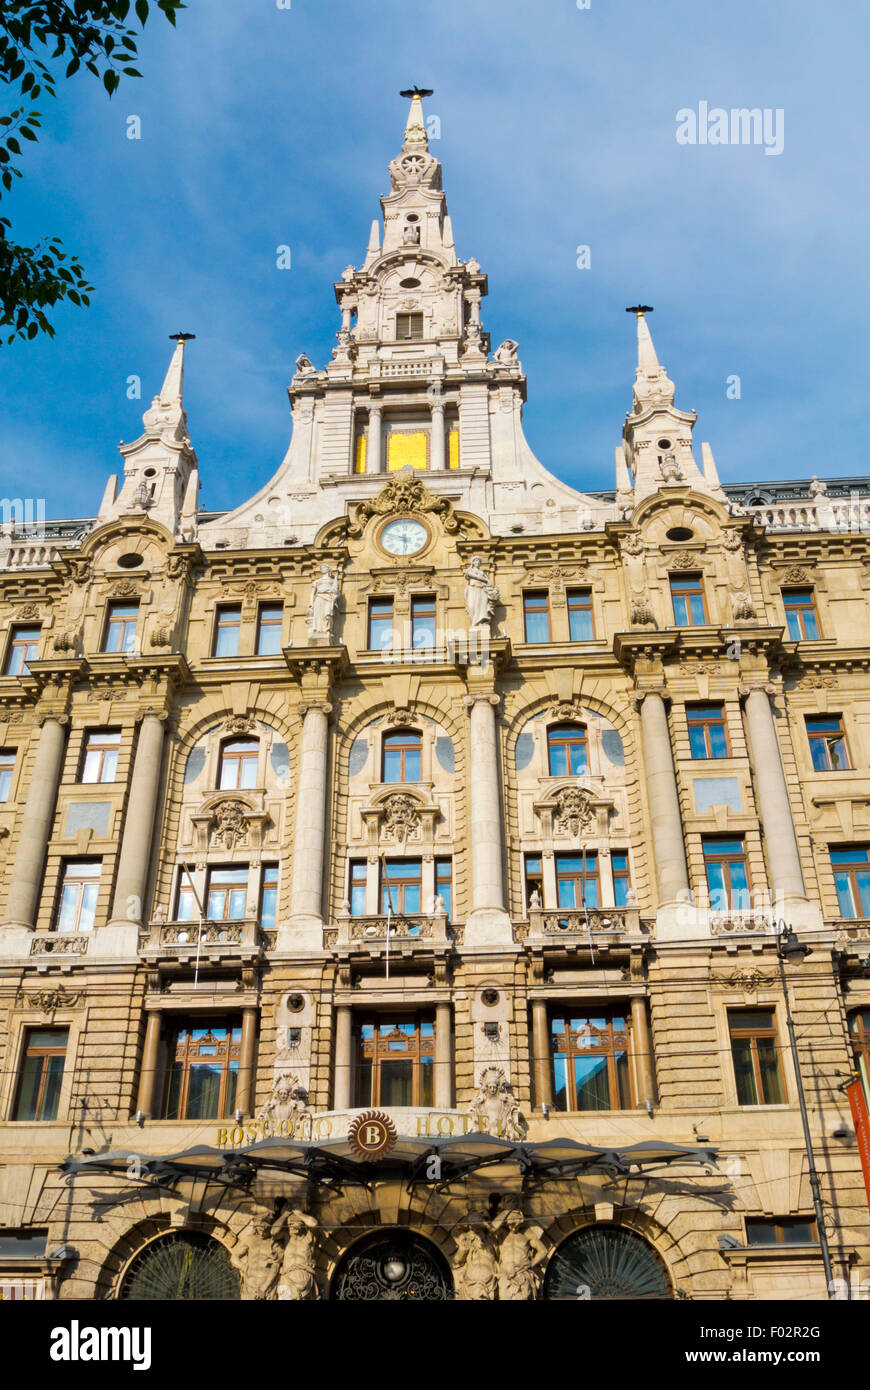 Boscolo Budapest Hotel, New York Palace (1894), housing hotel and cafe, Grand Boulevard, central Budapest, Hungary - Stock Image